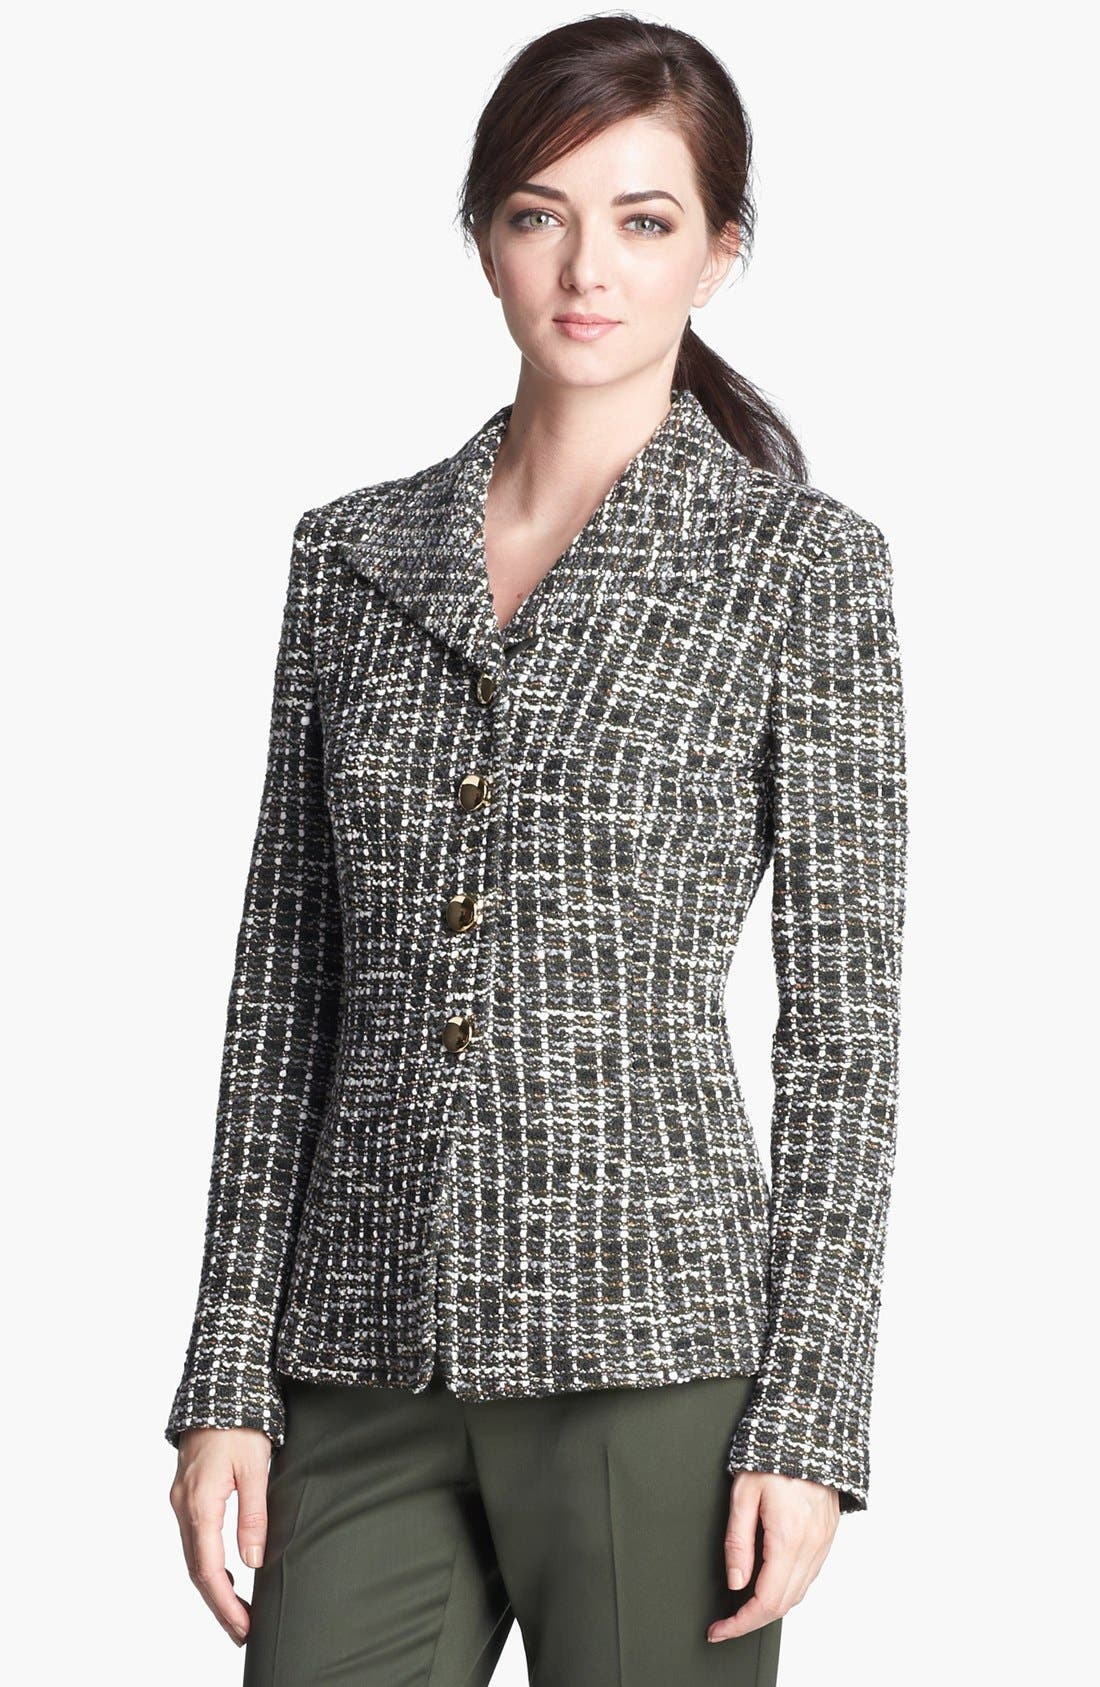 Alternate Image 1 Selected - St. John Collection Loden Check Tweed Knit Jacket